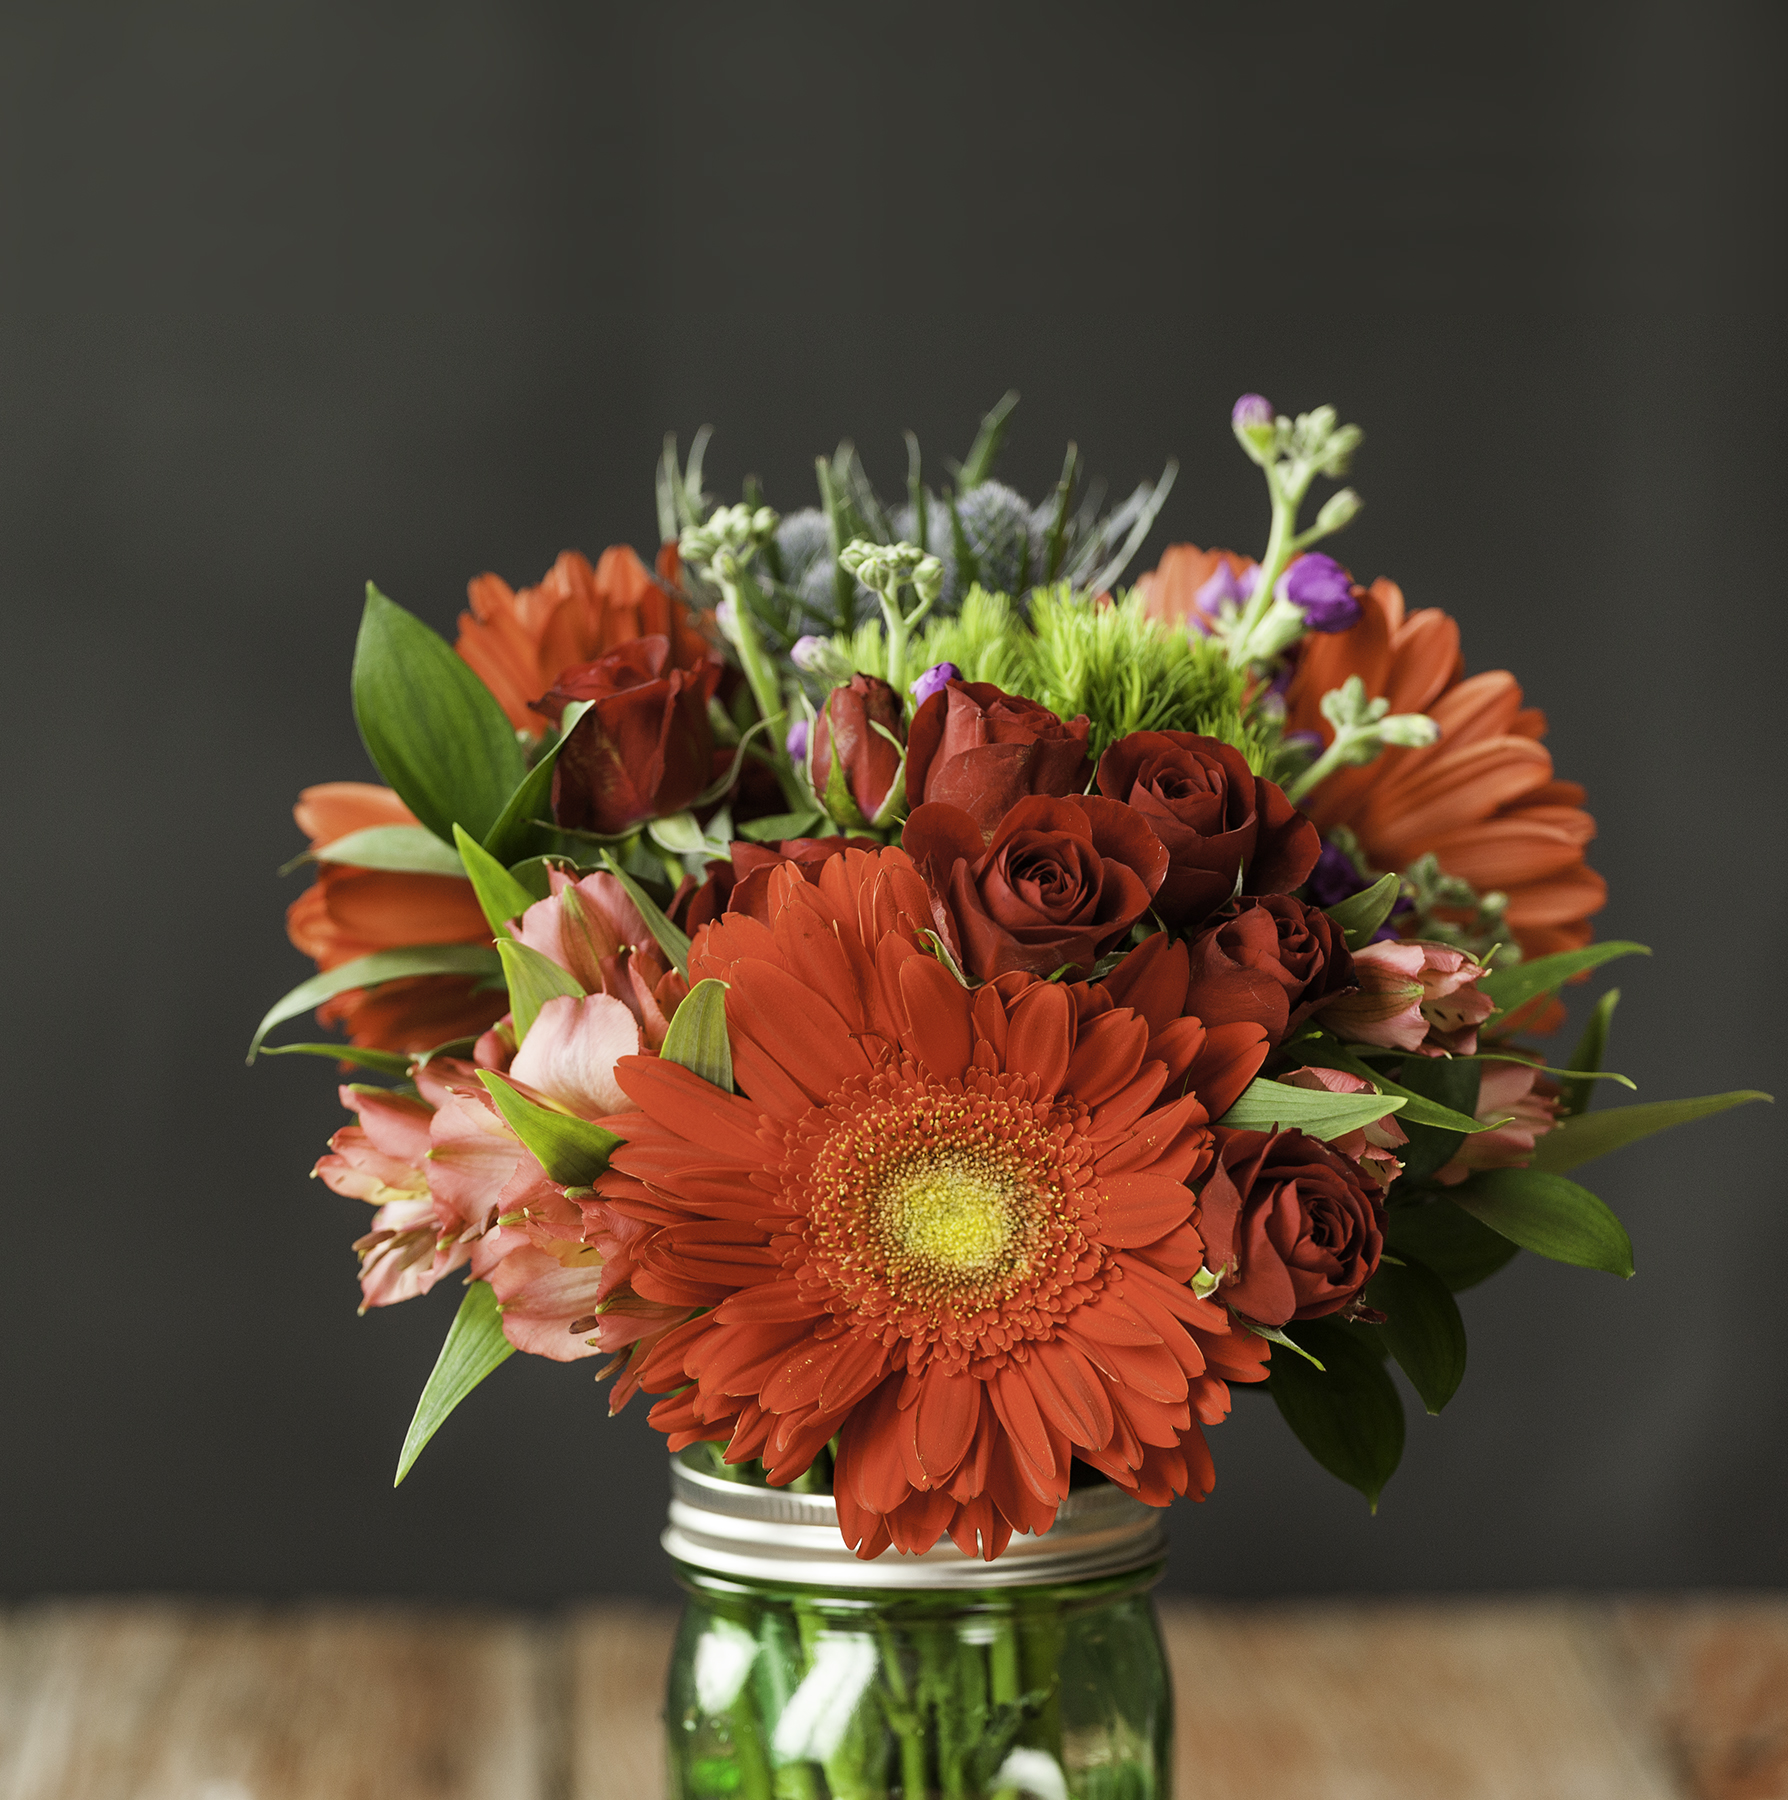 Whole Foods Wedding Bouquet: The Trick To Choosing The Best Grocery Store Blooms